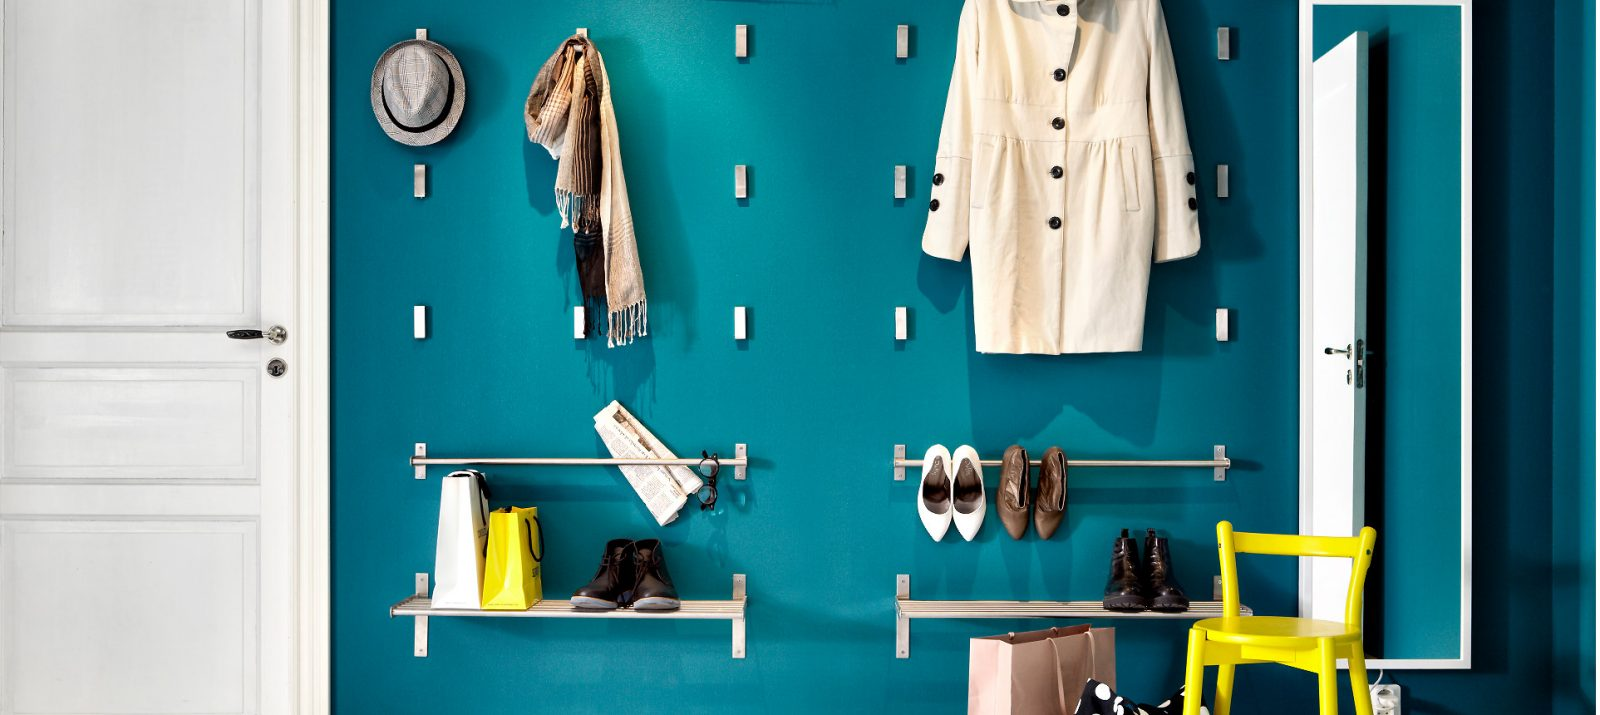 Ikea Bjarnum Folding Hooks Are Stylish And Bedroom Storage Hacks Solutions